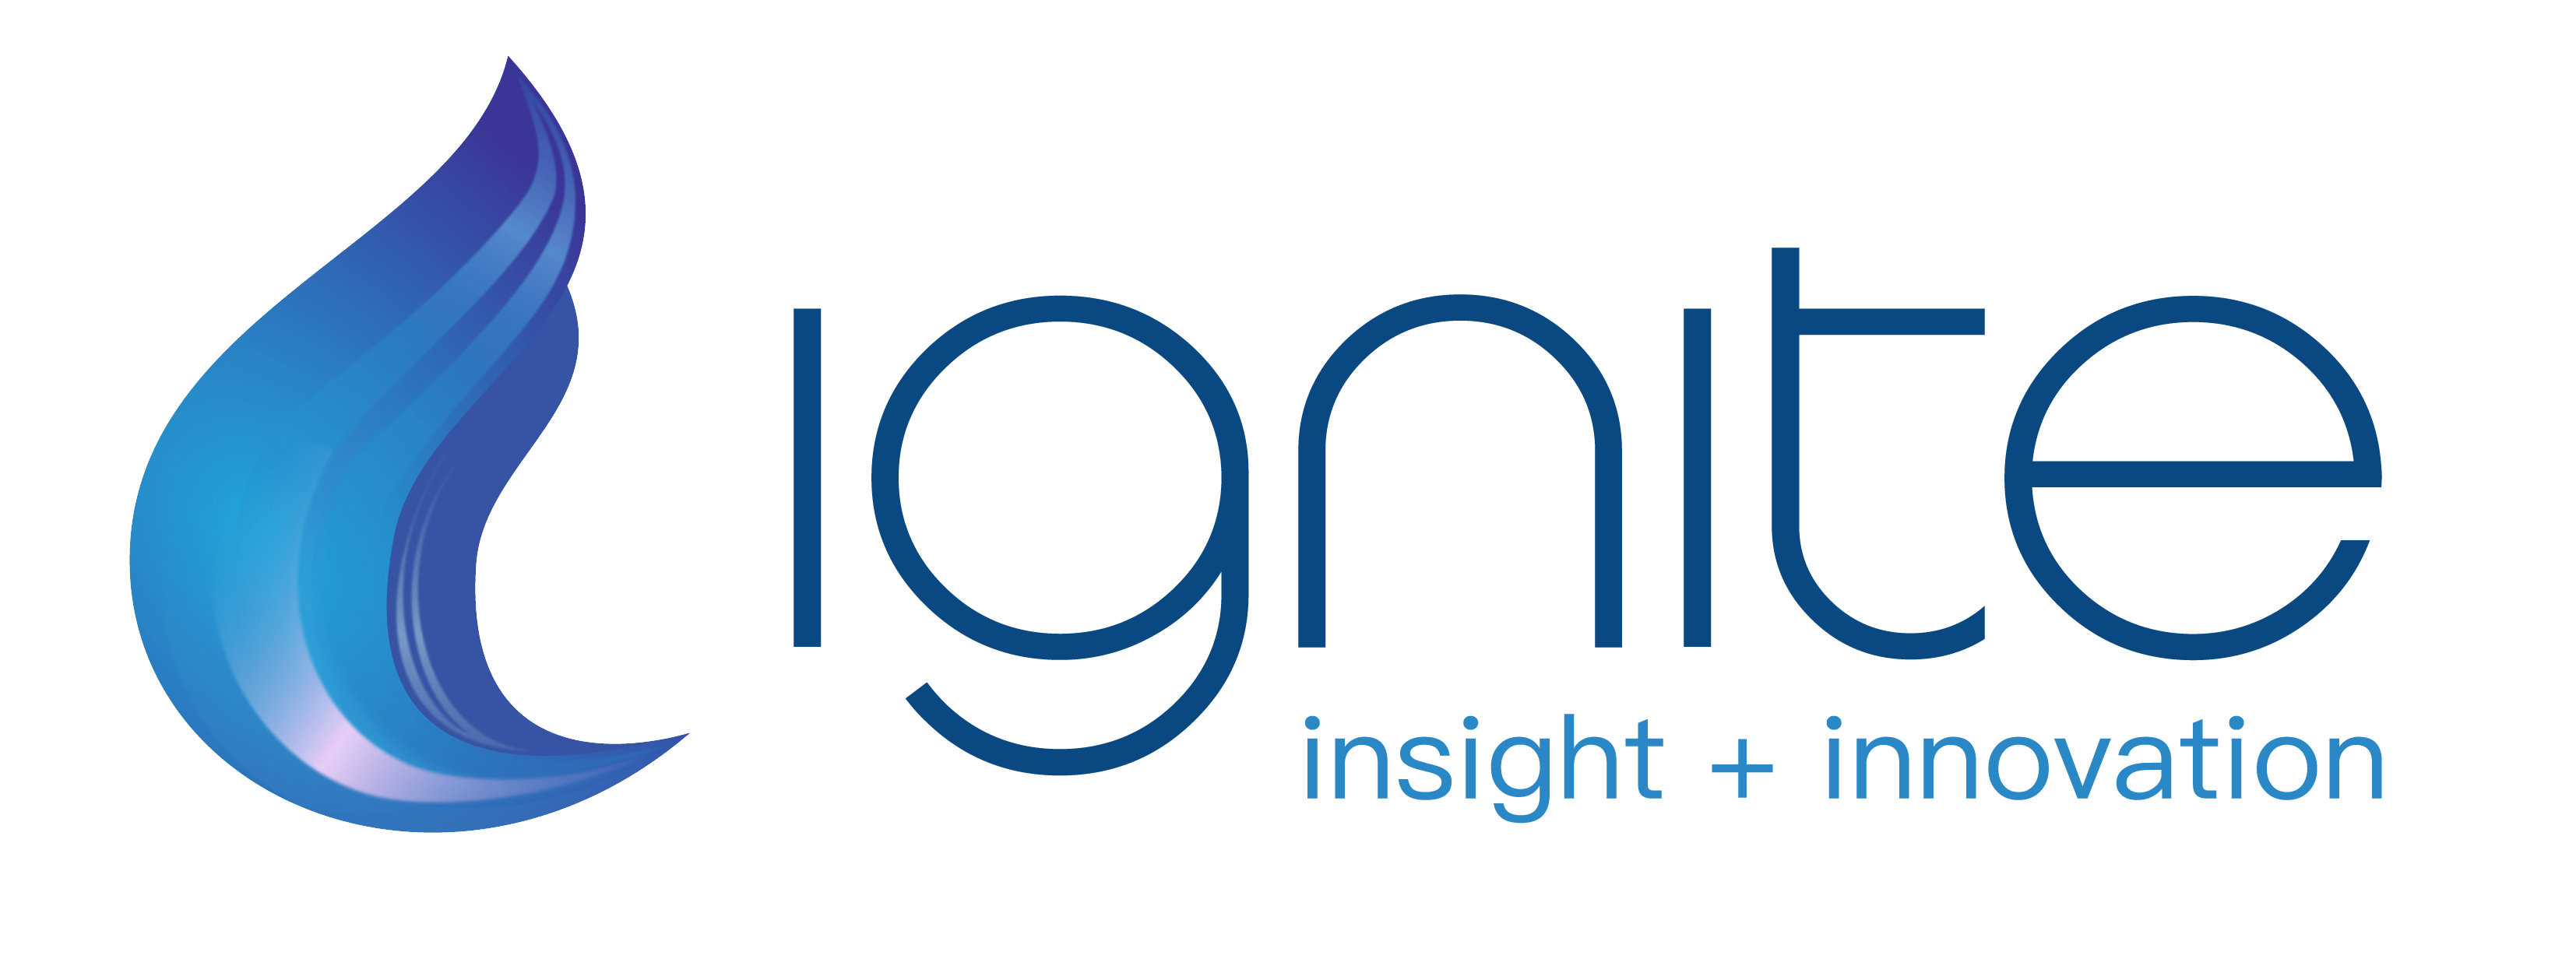 Ignite Insight + Innovation